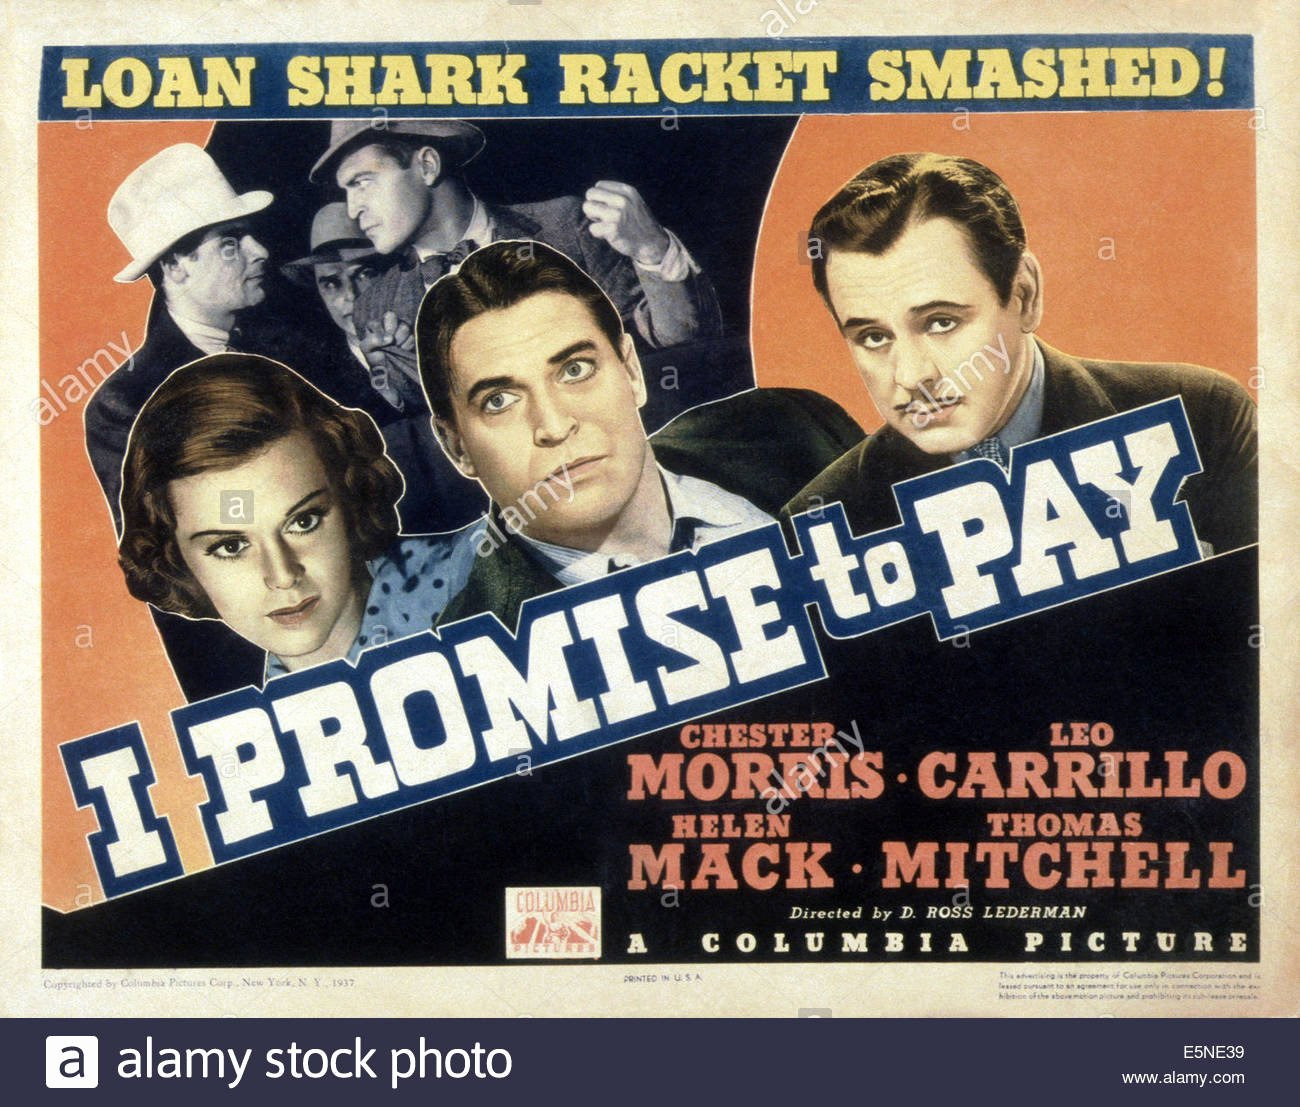 Promise to Pay Lovely I Promise to Pay Front From Left Helen Mack Chester